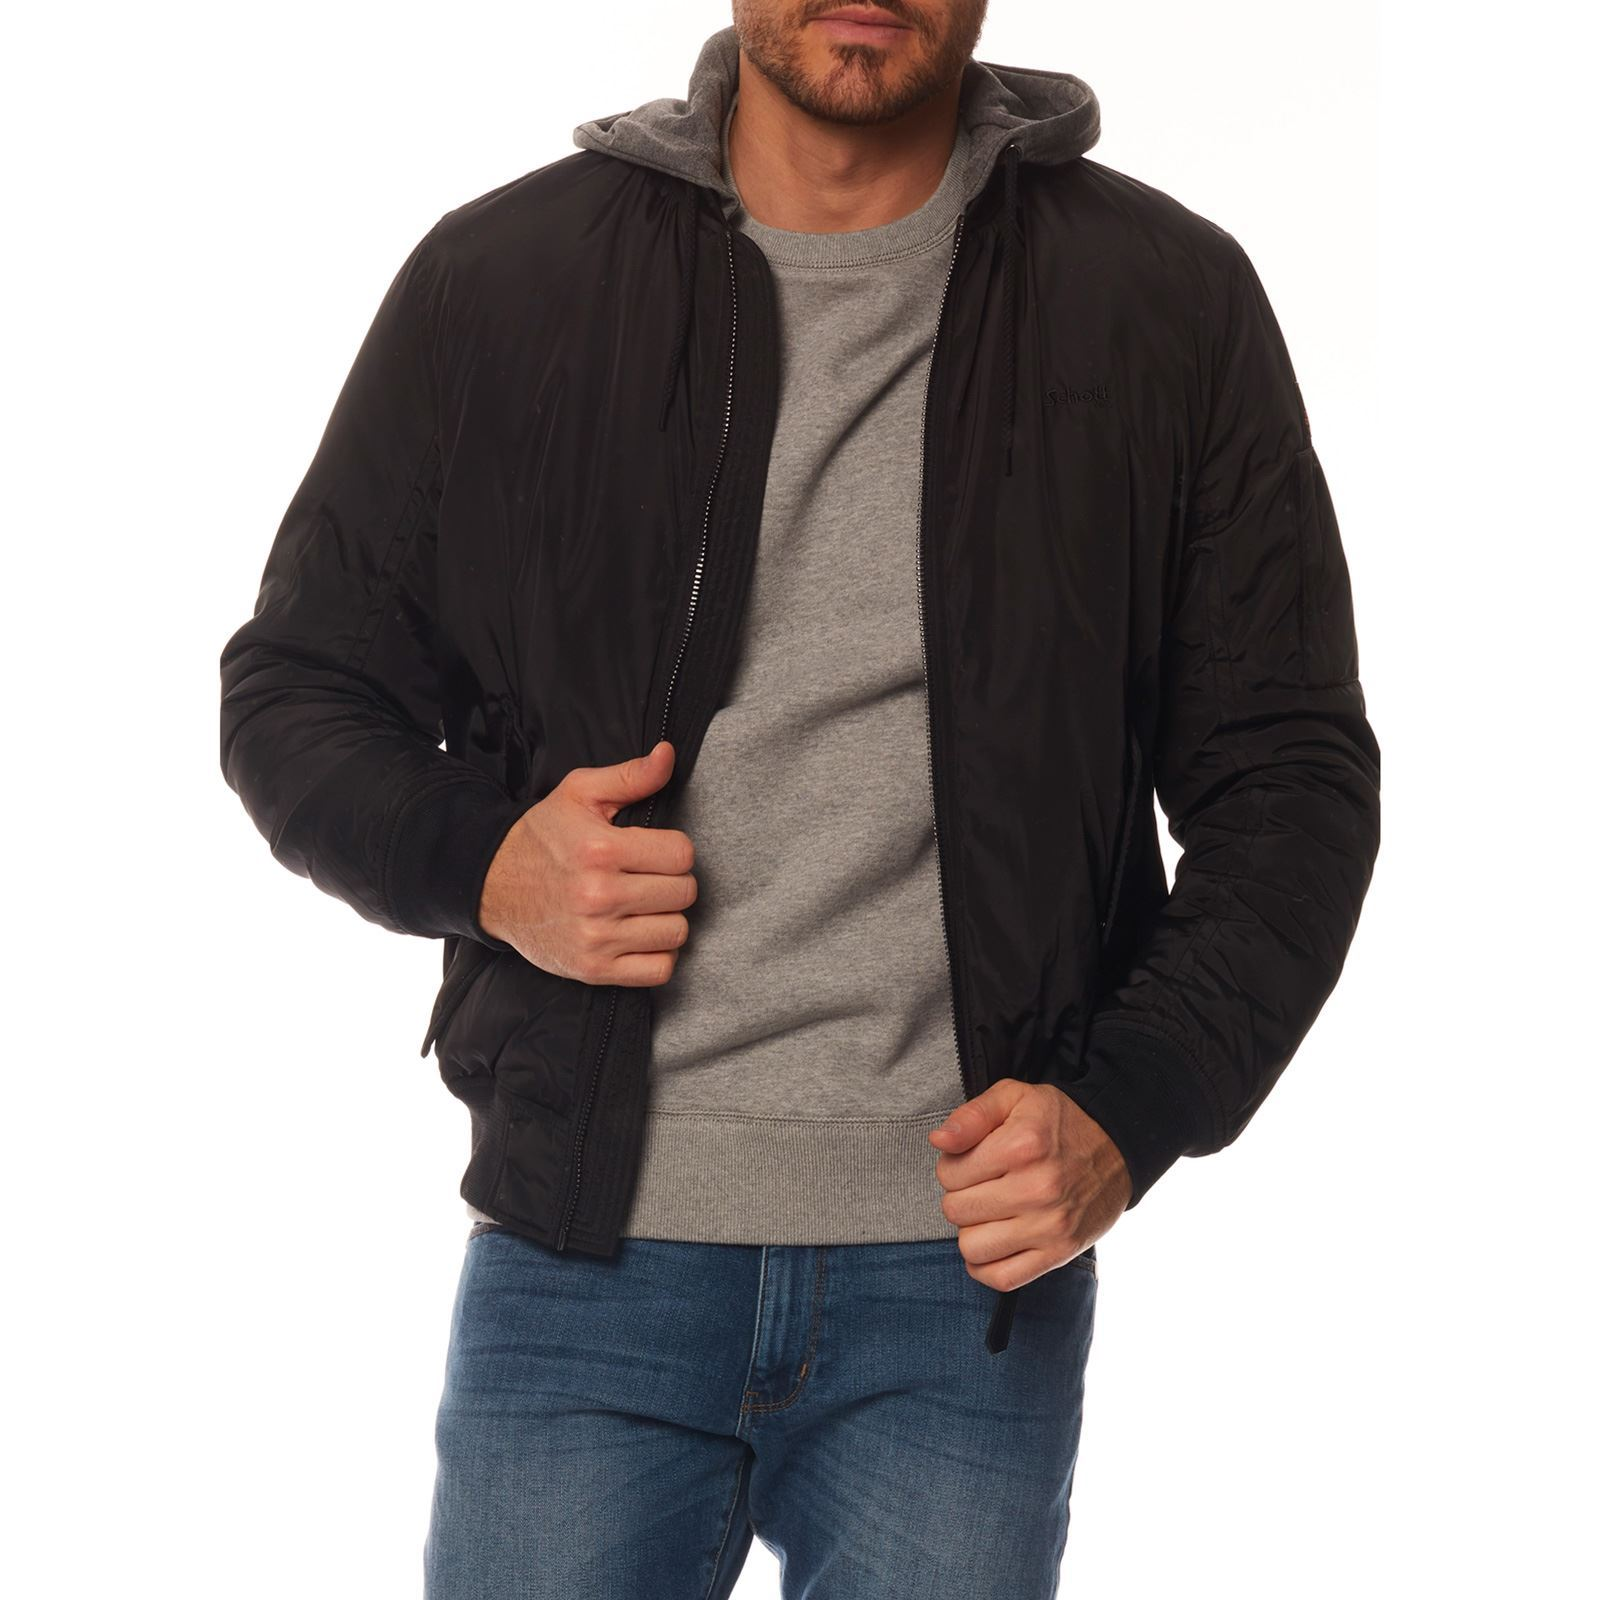 buy popular 2e2d2 016c2 Mahood19 - Bomberjacke - schwarz